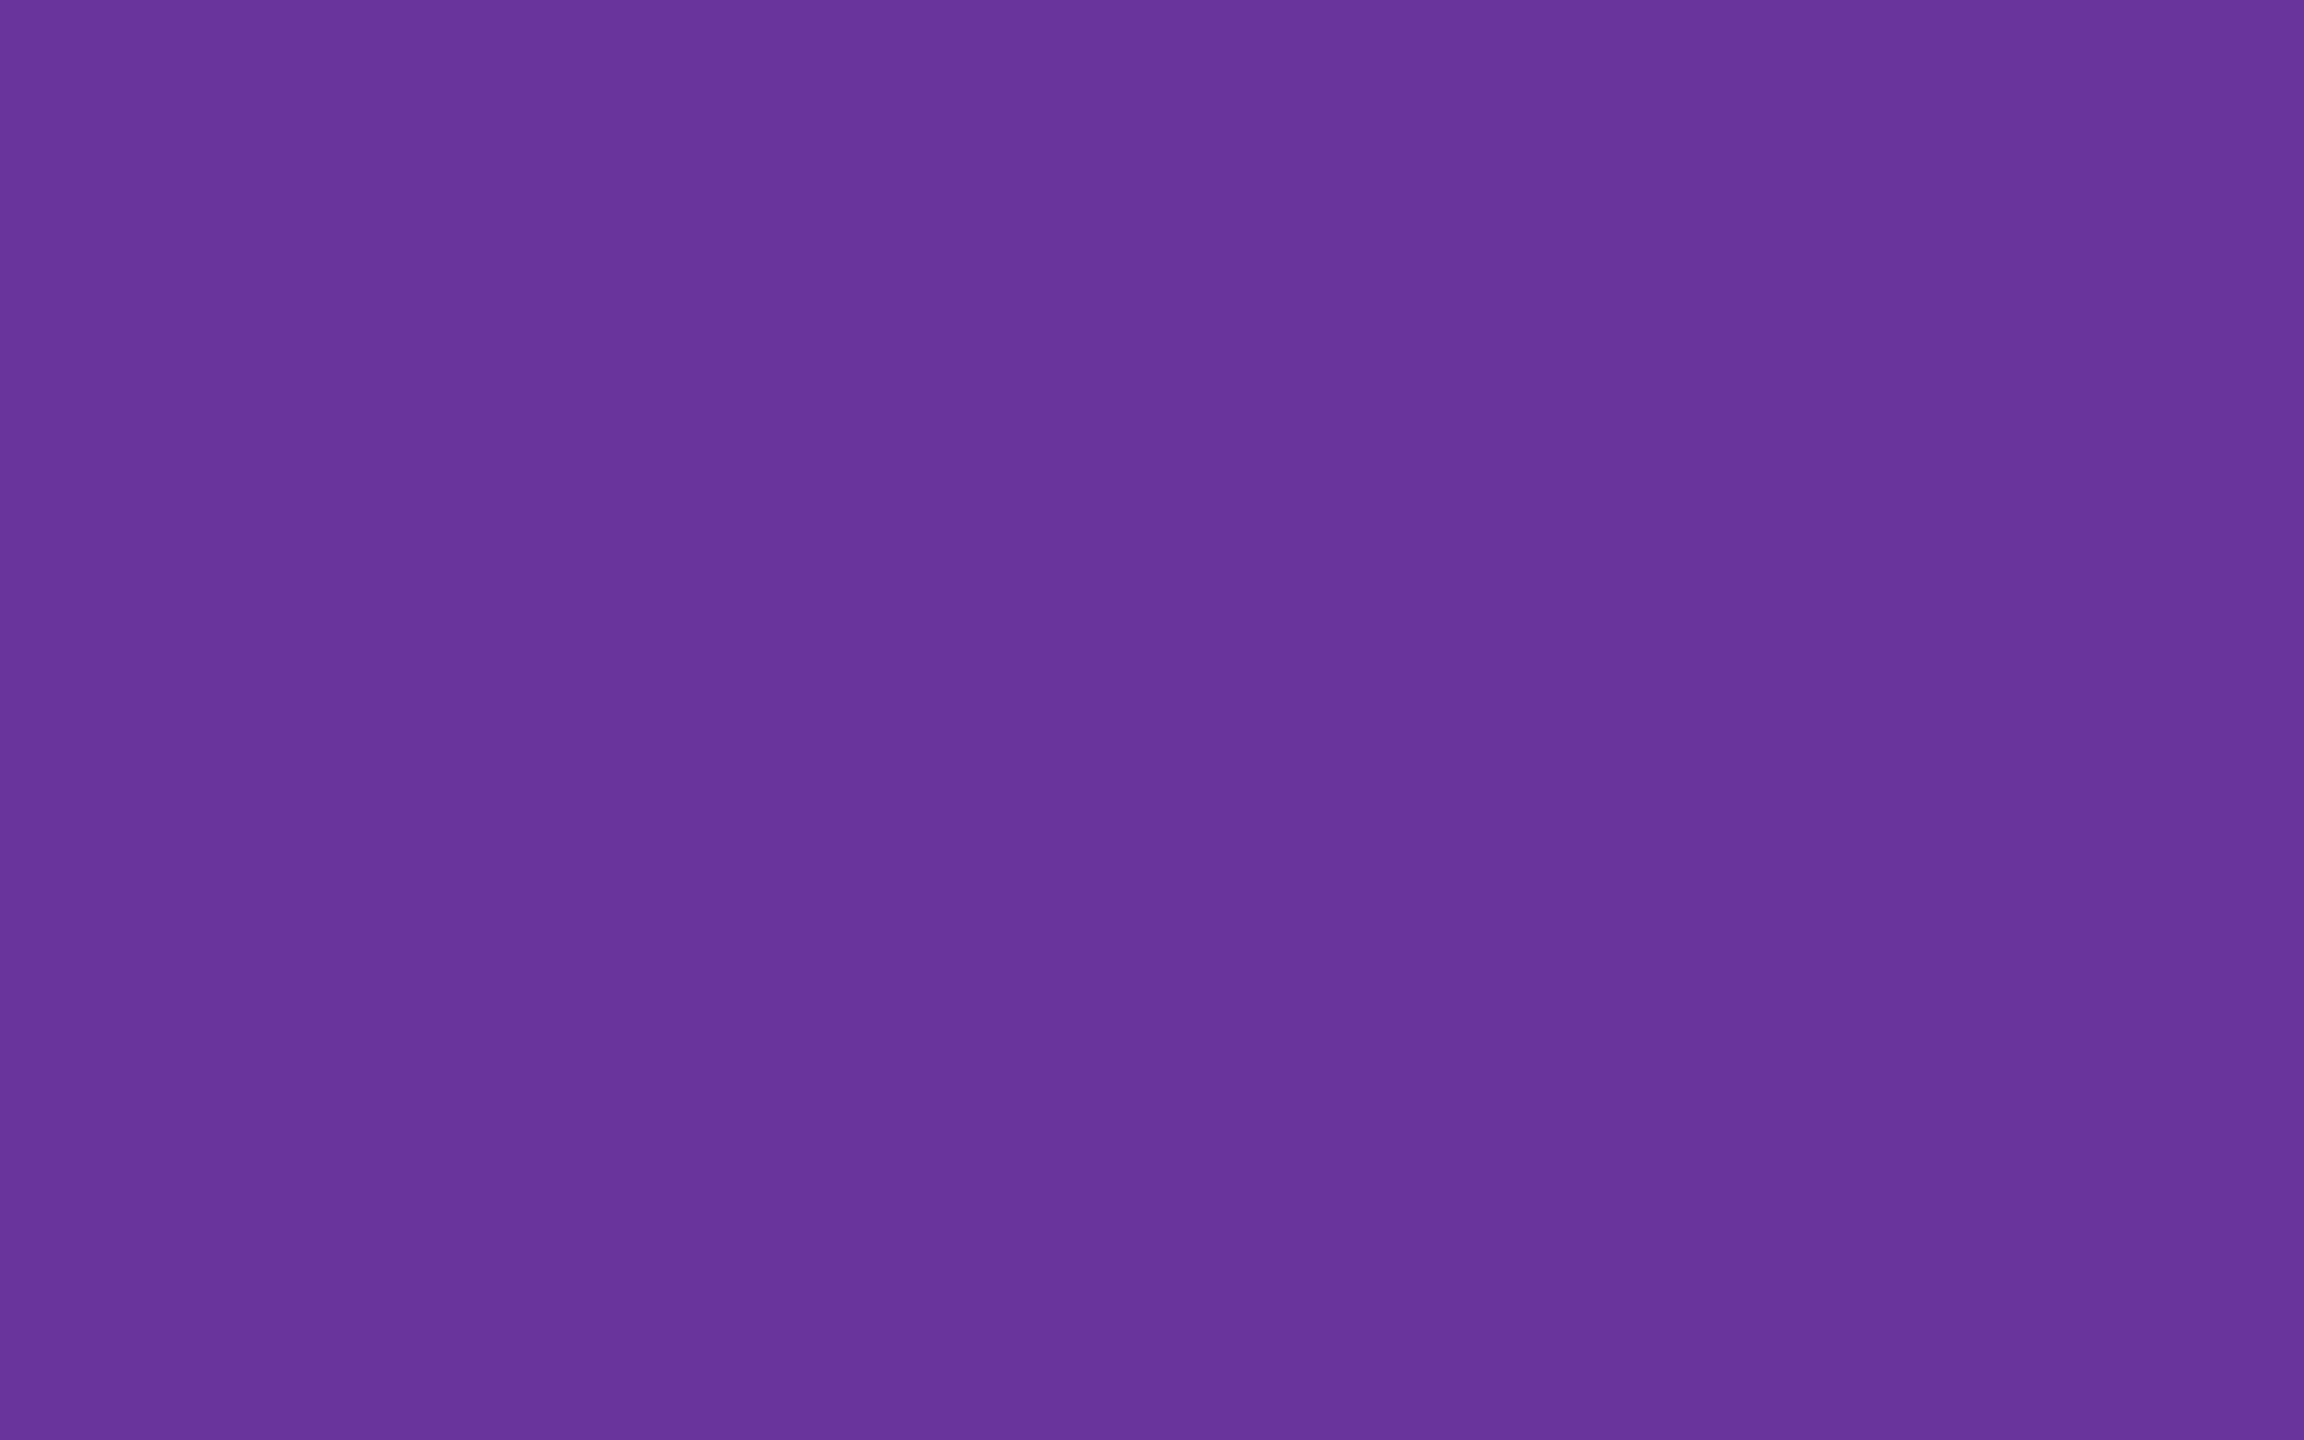 2304x1440 Purple Heart Solid Color Background